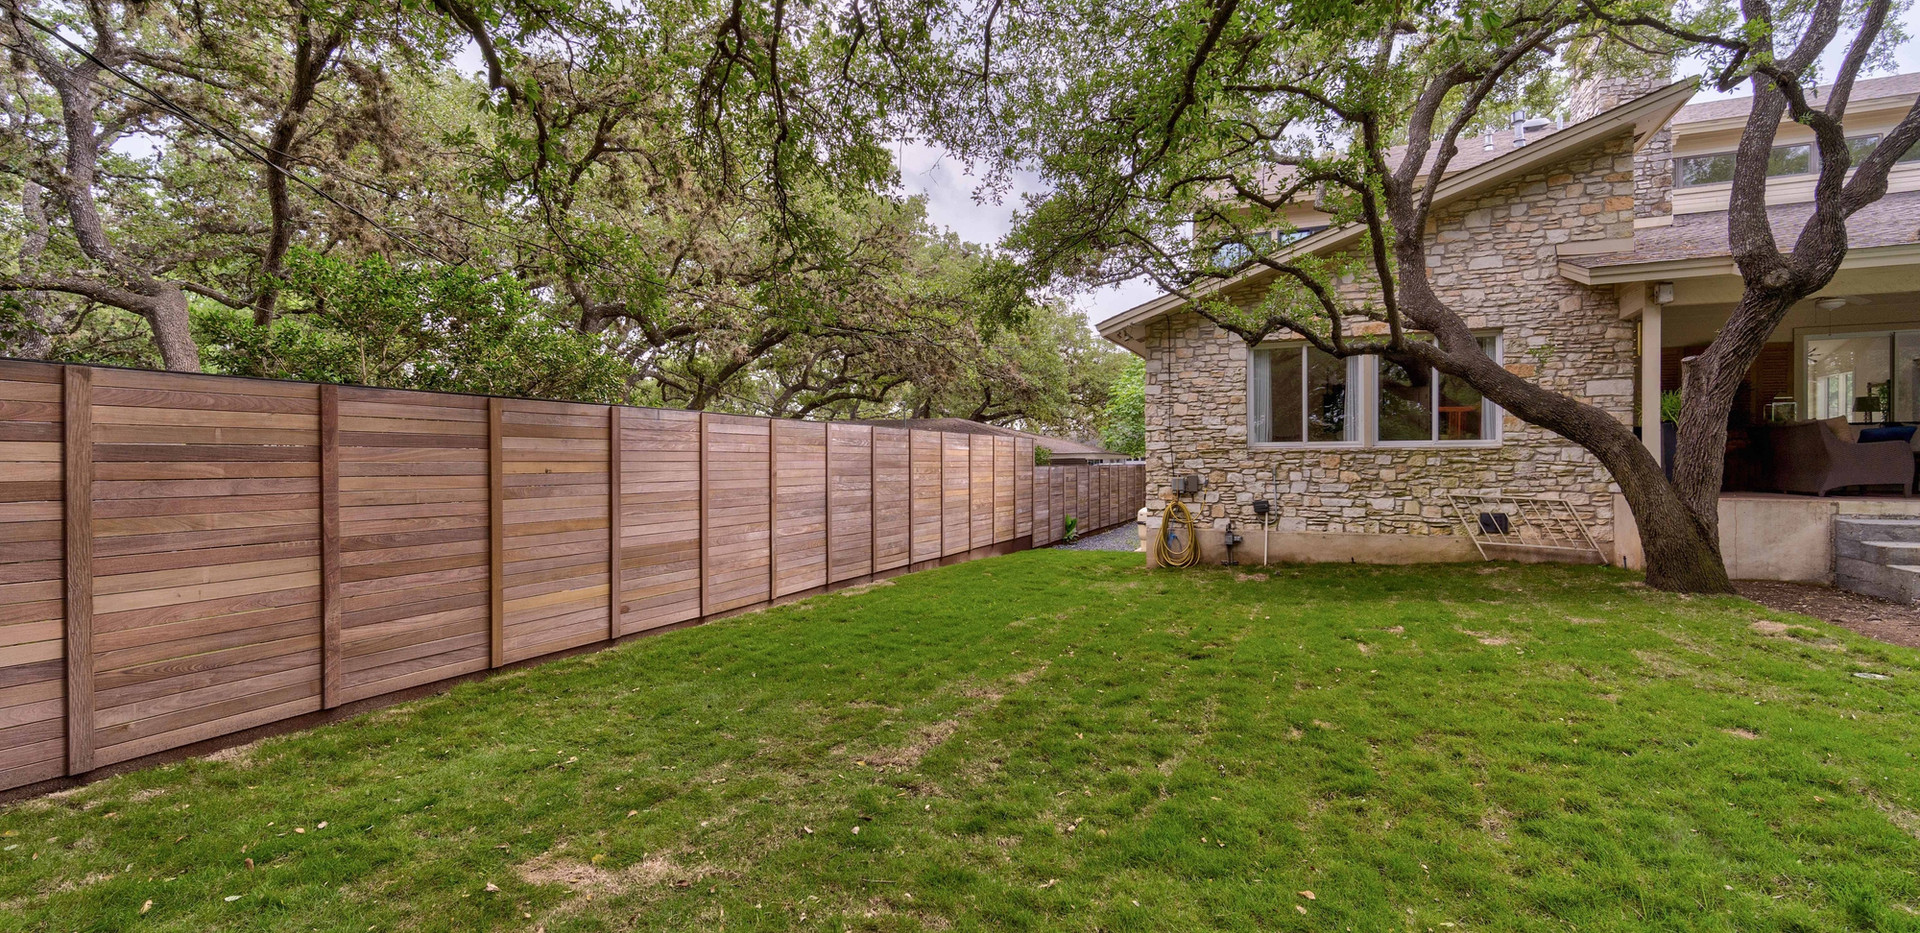 Custom Fence | Team Haikola | Sleek & Sophisticated